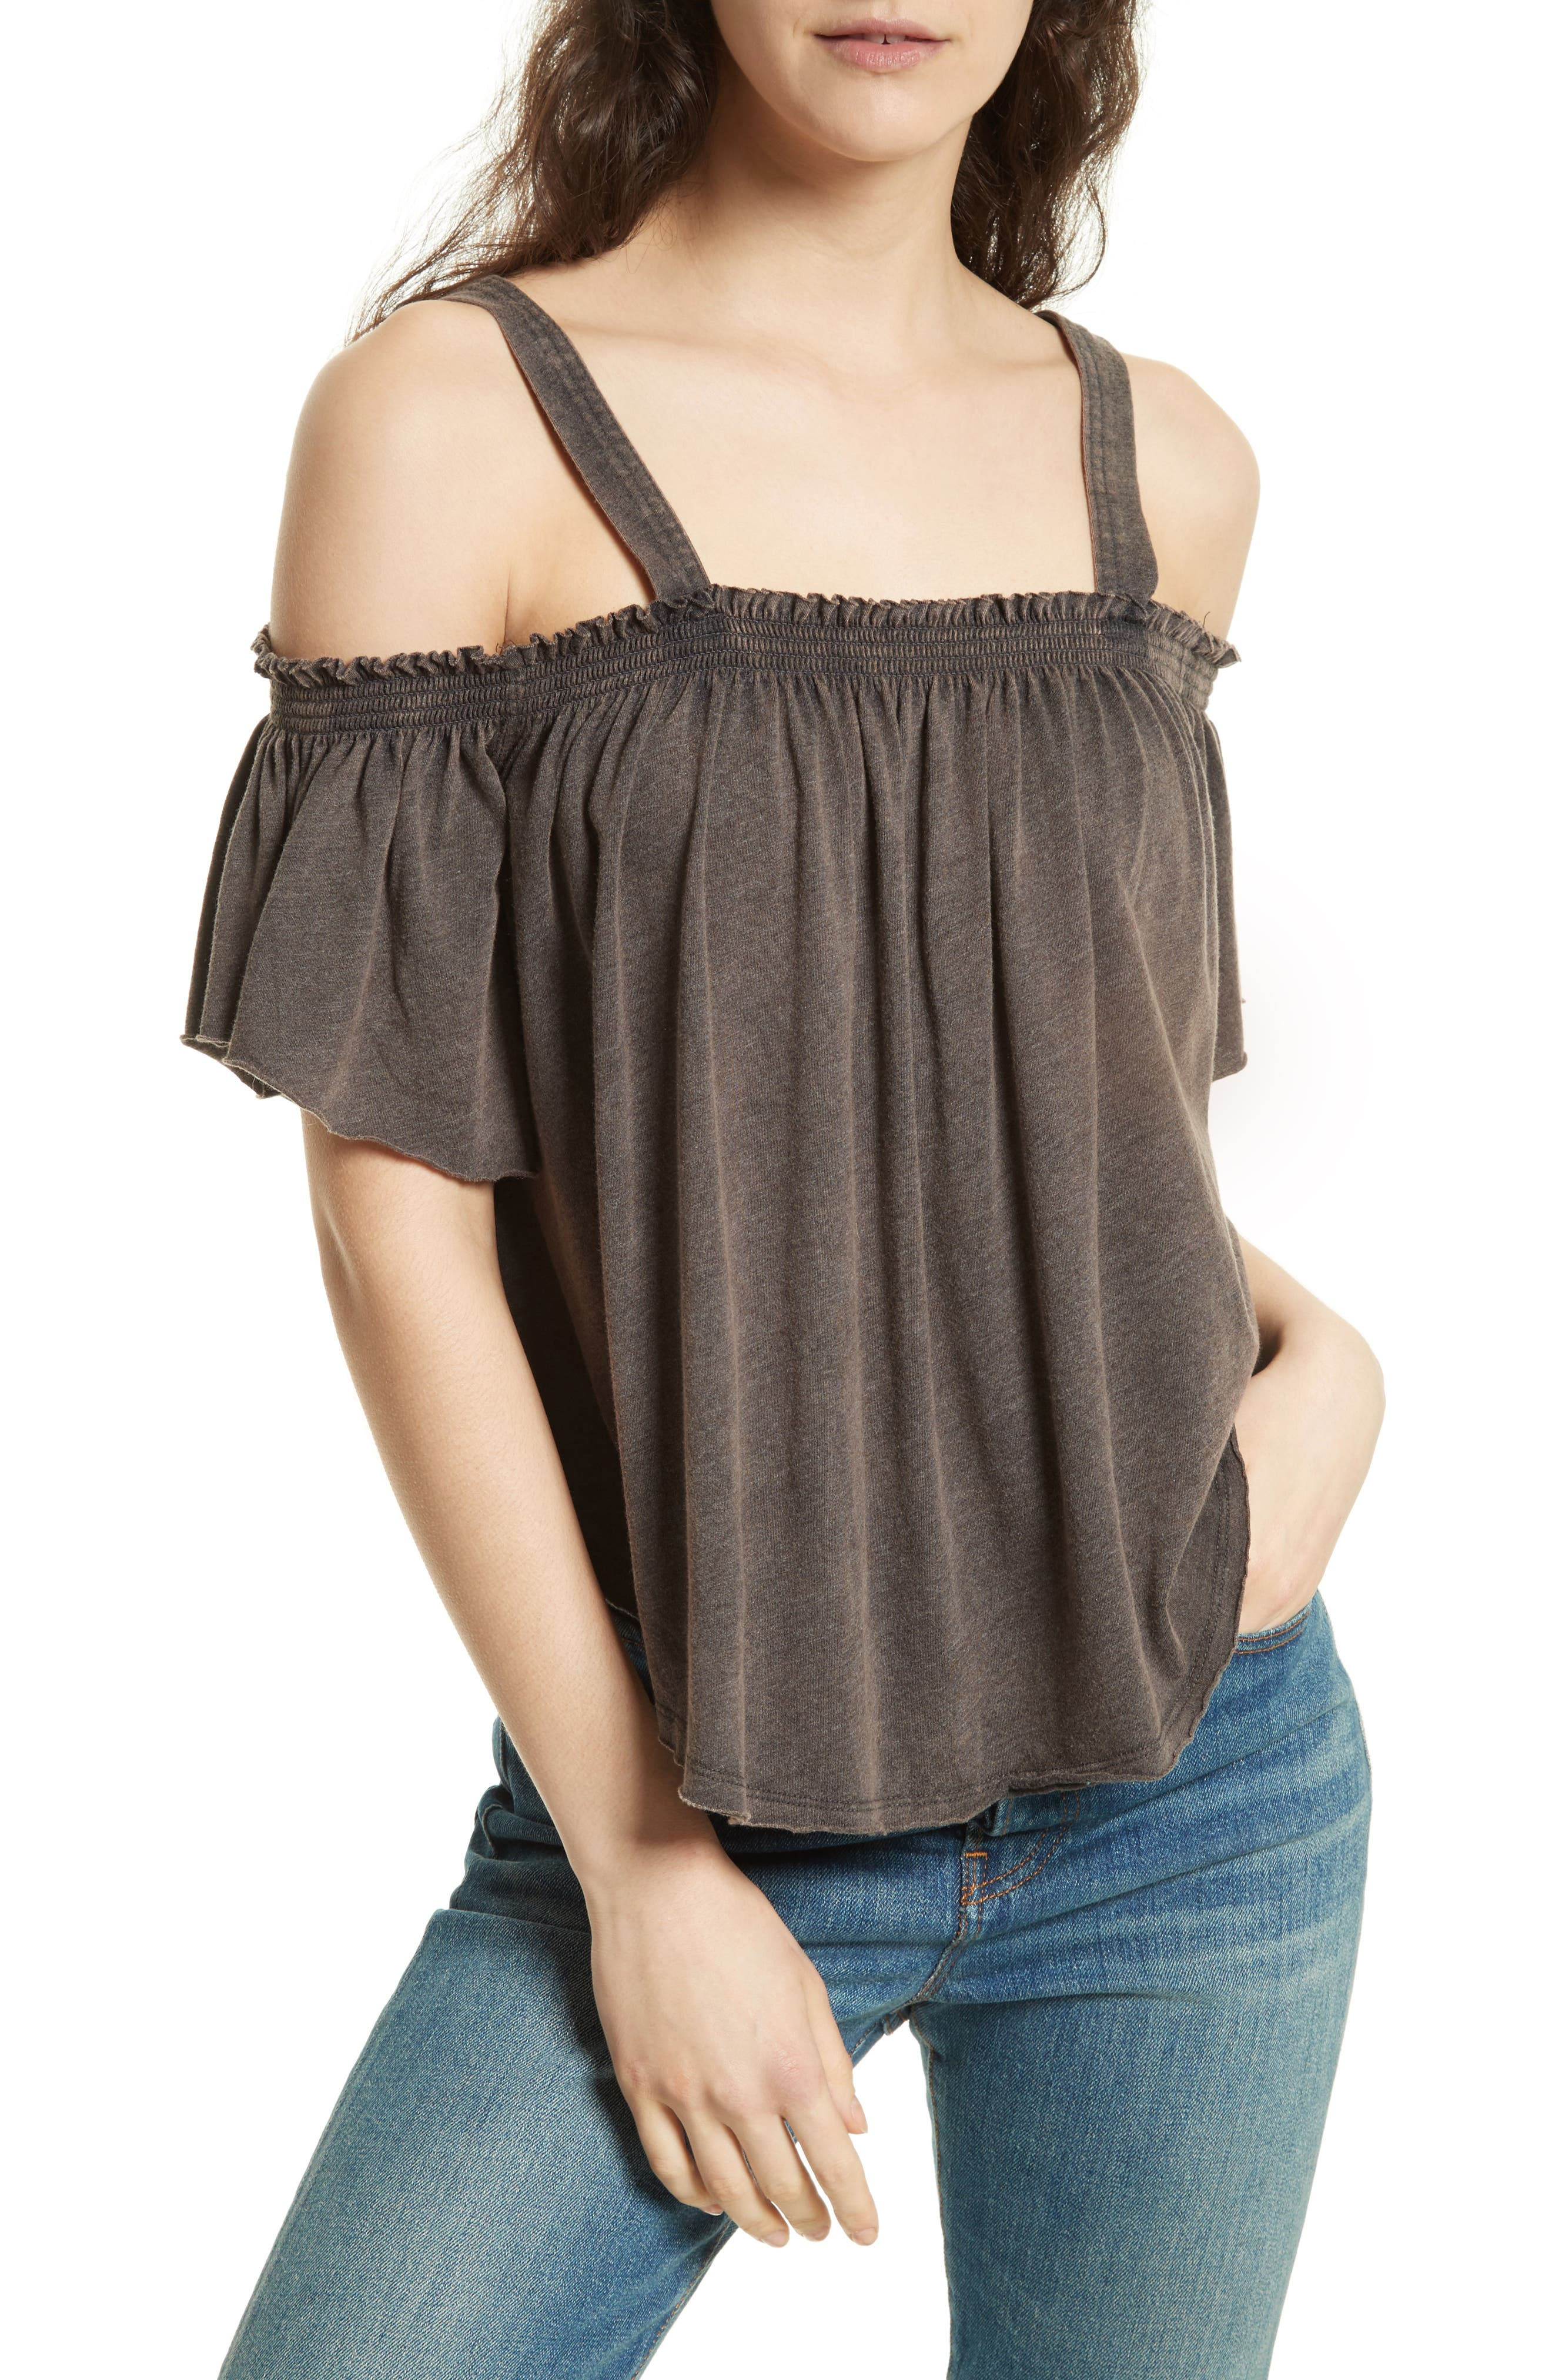 FREE PEOPLE Darling Off the Shoulder Top, Main, color, 001